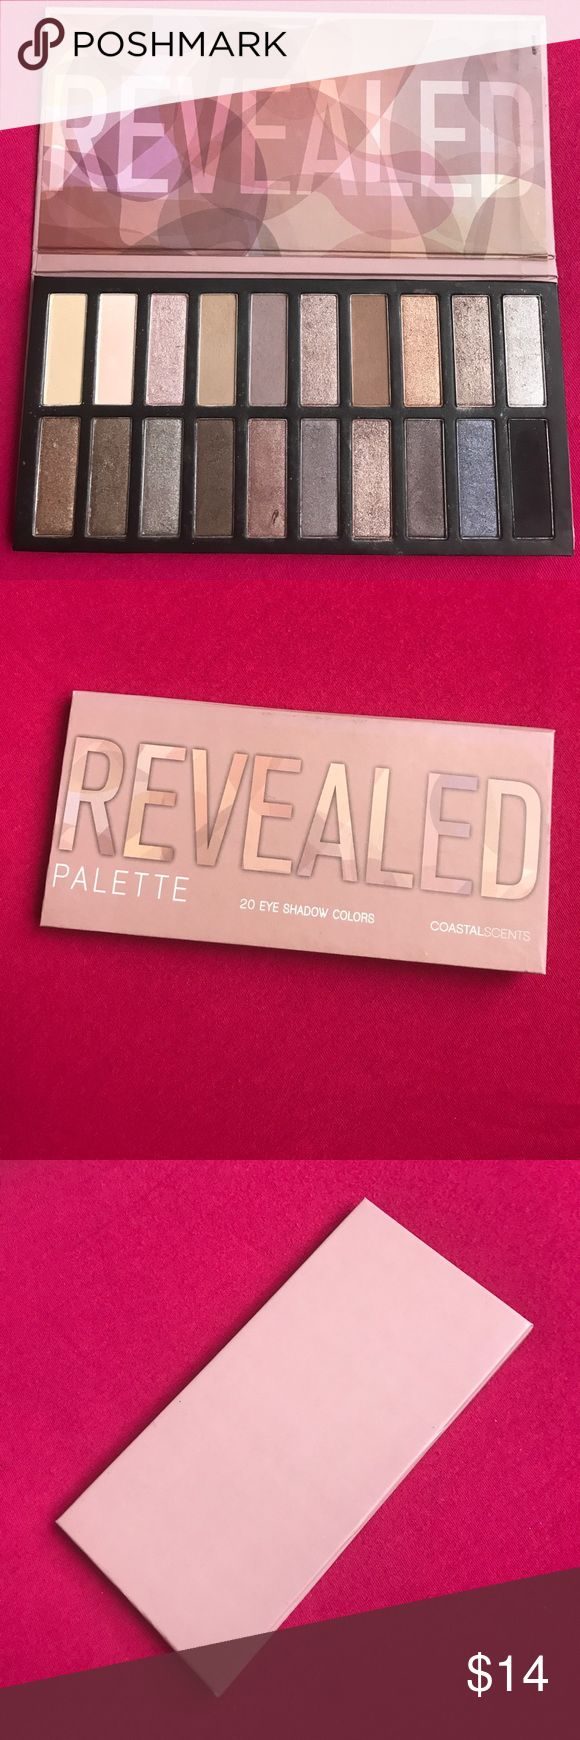 Coastal Scents Revealed Palette This item is used. Alot of product in the pan still. Good condition. No trade. Coastal Scents Makeup Eyeshadow